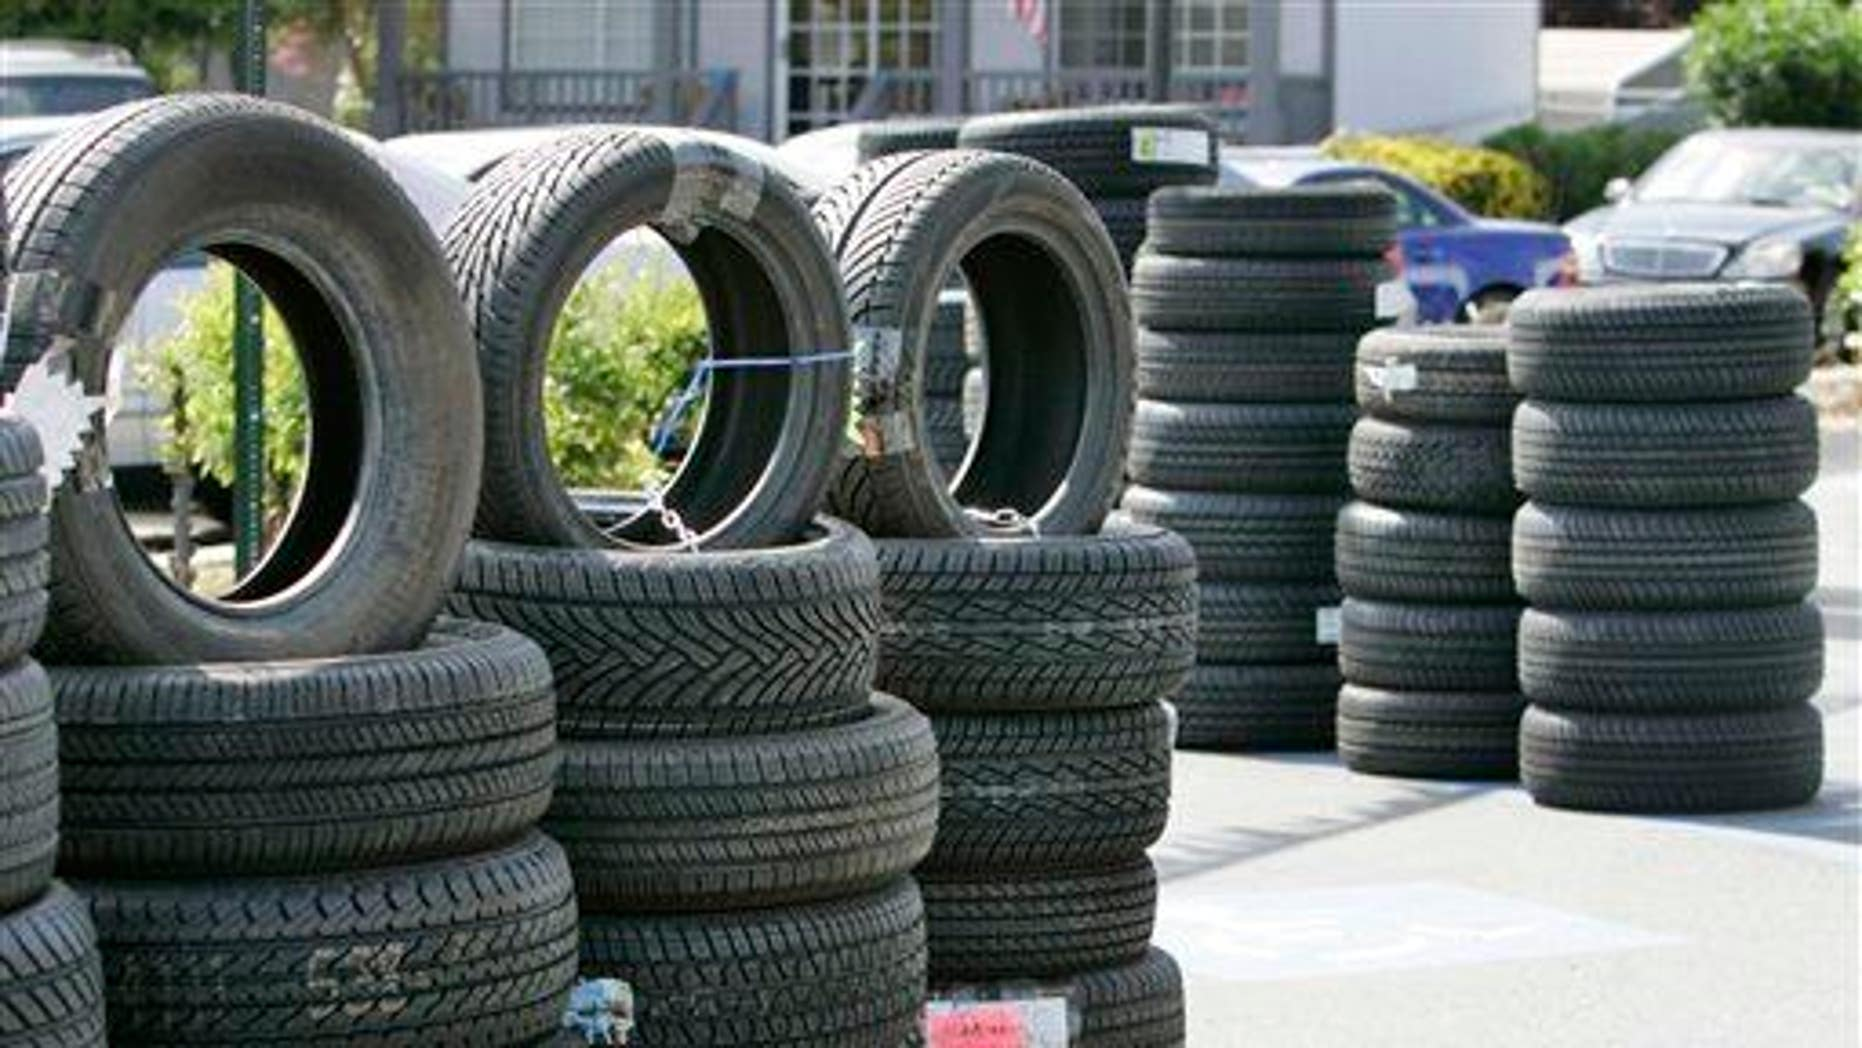 Tires are displayed outside of a Goodyear Tires shop in San Jose.